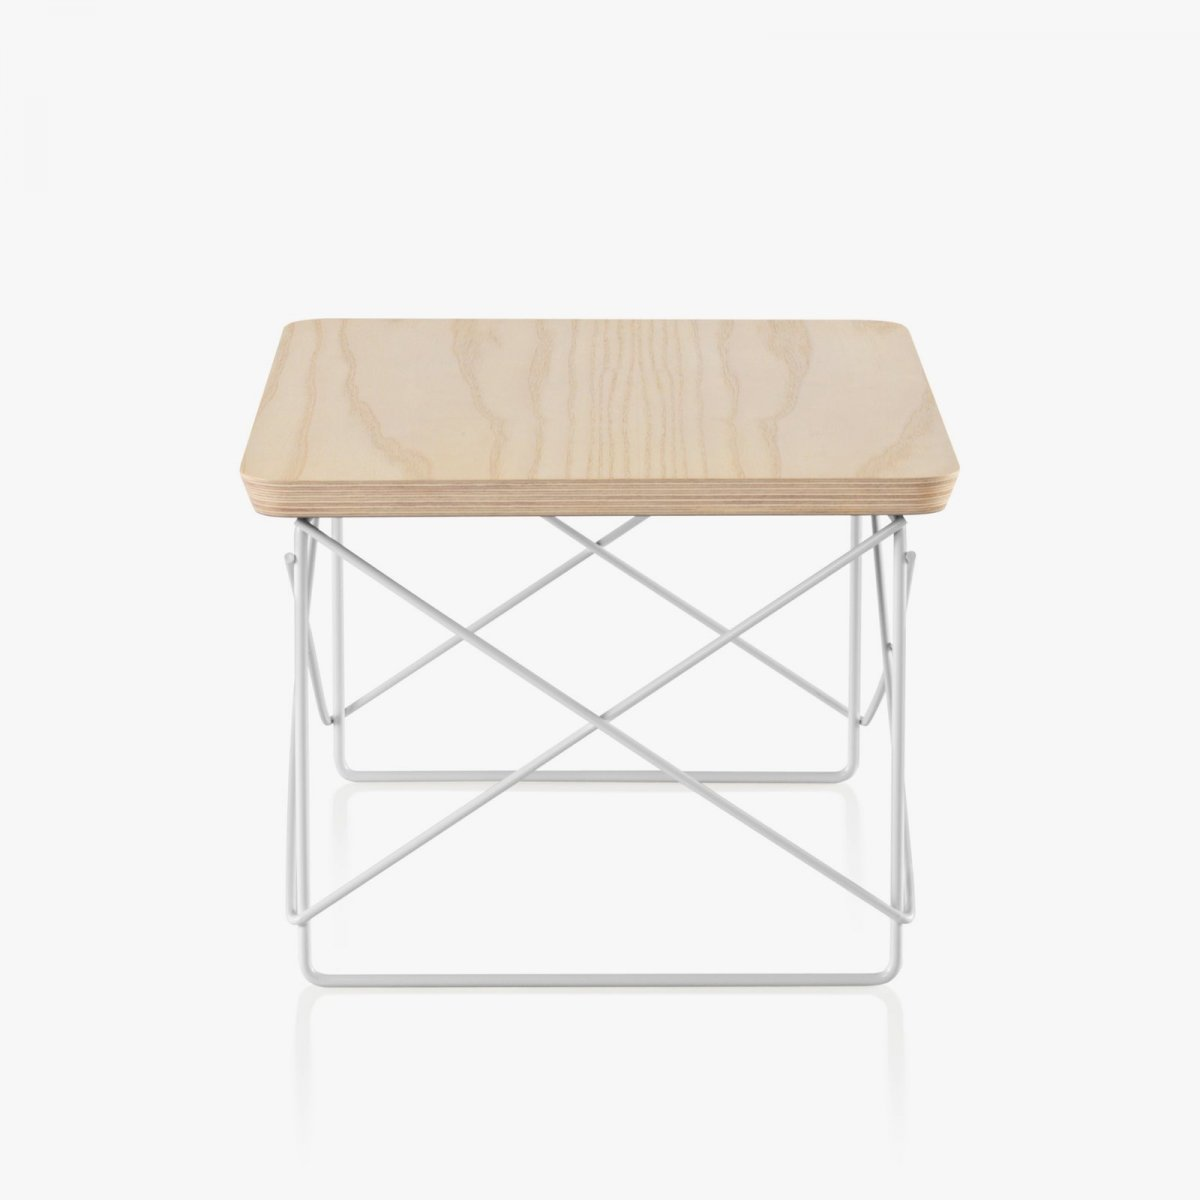 Eames Wire Base Low Table, white ash top with white base, side view.